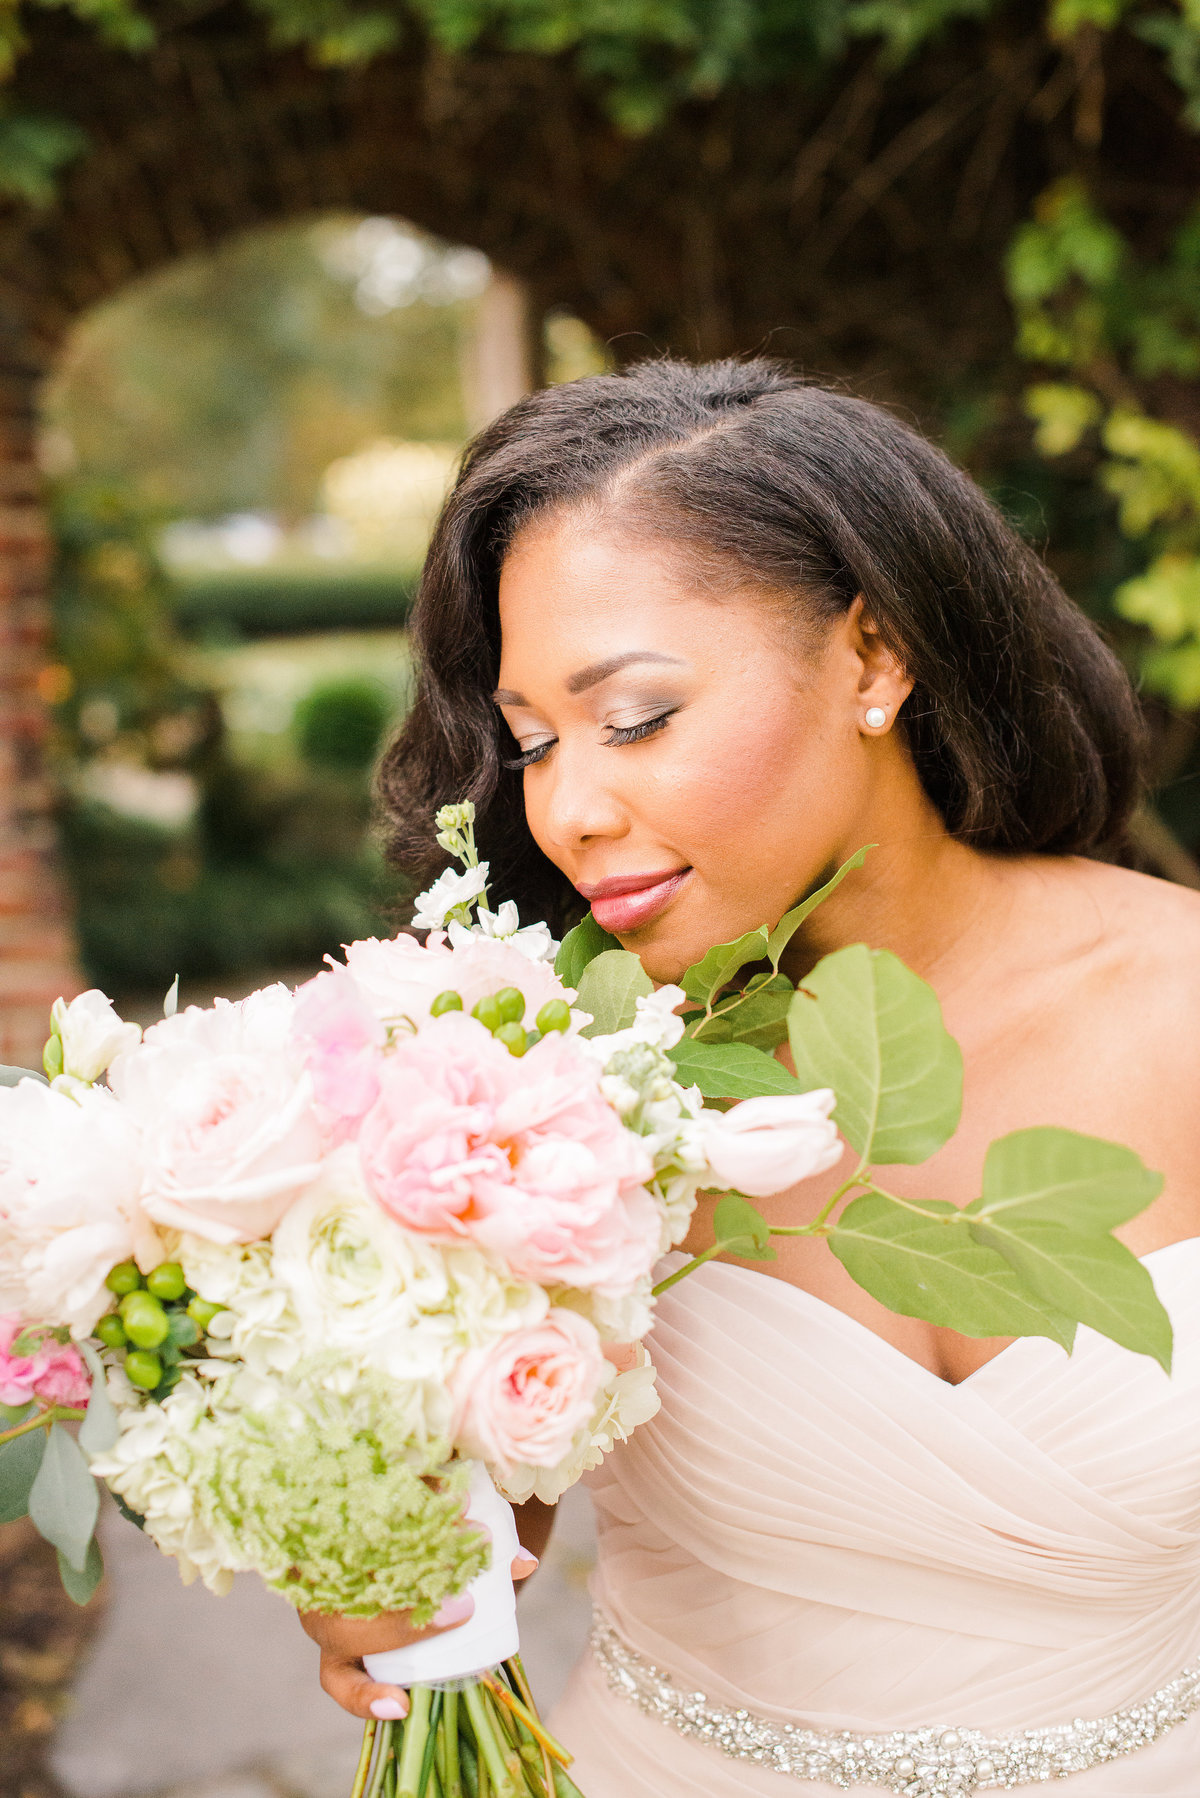 Heart's Content Events - Virginia Maryland DC Wedding and Event Planner - Marriage Coach - Adrienne Rolon - Photo3